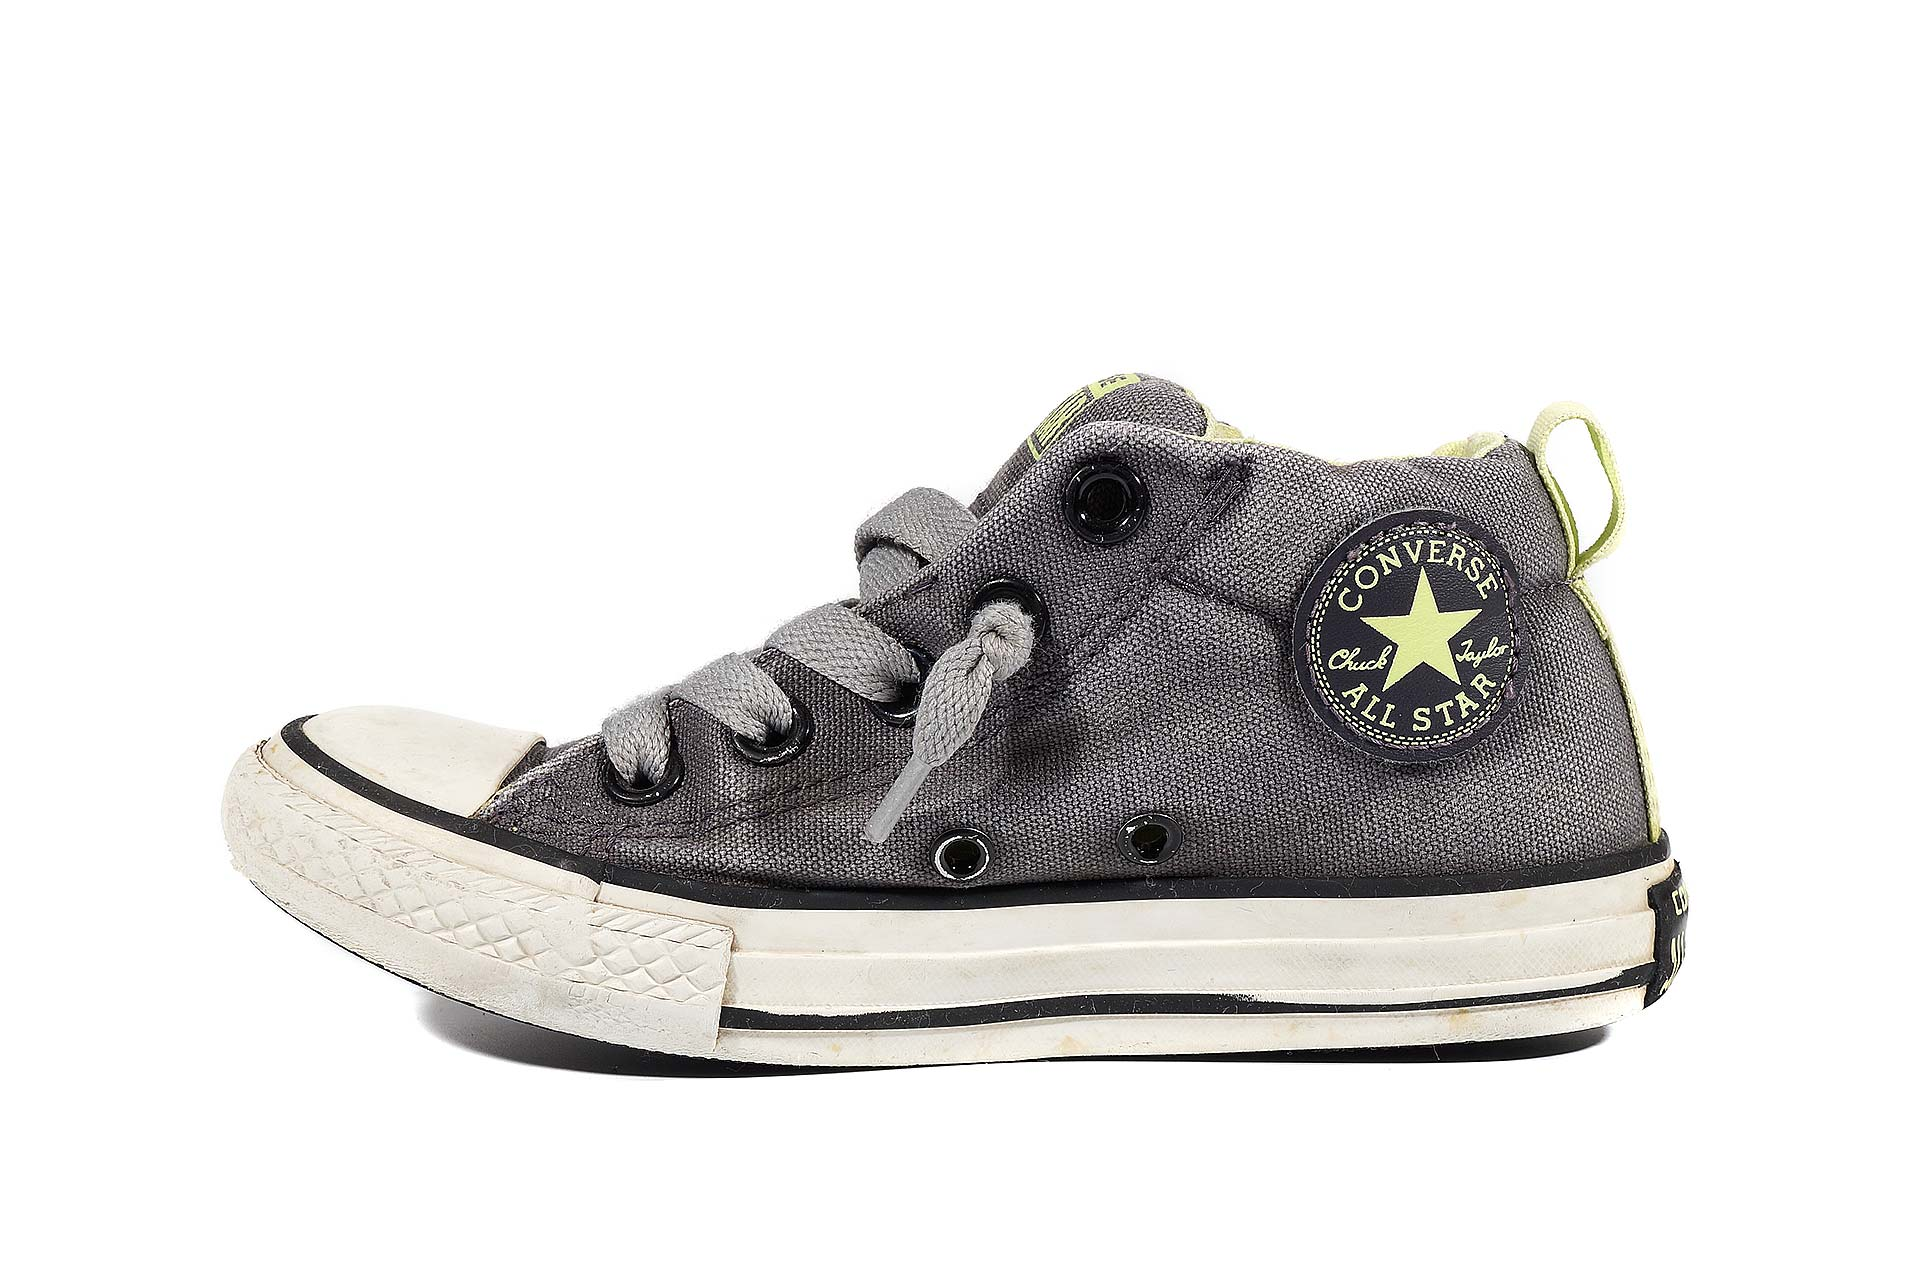 4e52e264952d Converse kids Chuck Taylor All Star Street Mid 637266 (00001-U) sneakers  used buy online shop vintageshoes.ru